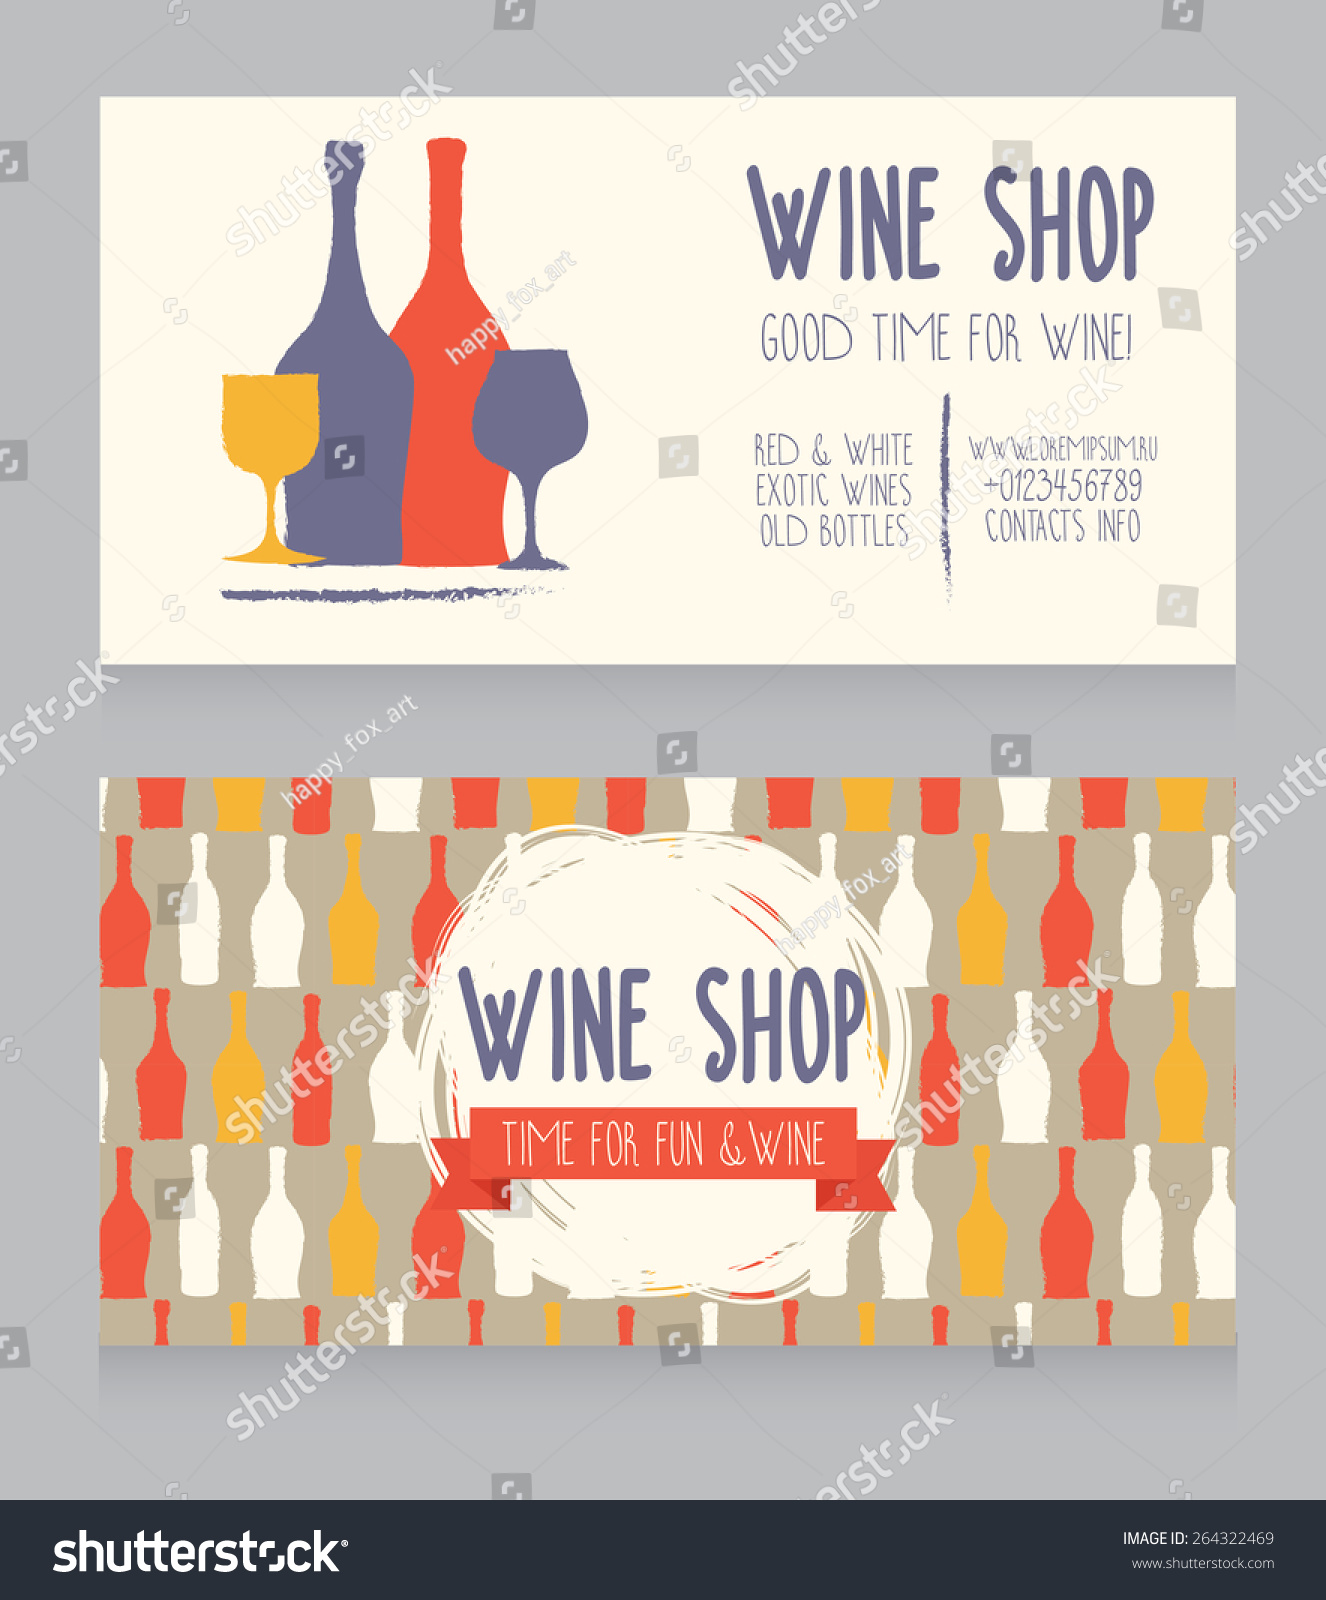 Template Wine Shop Business Card Colorful Stock Vector 264322469 ...